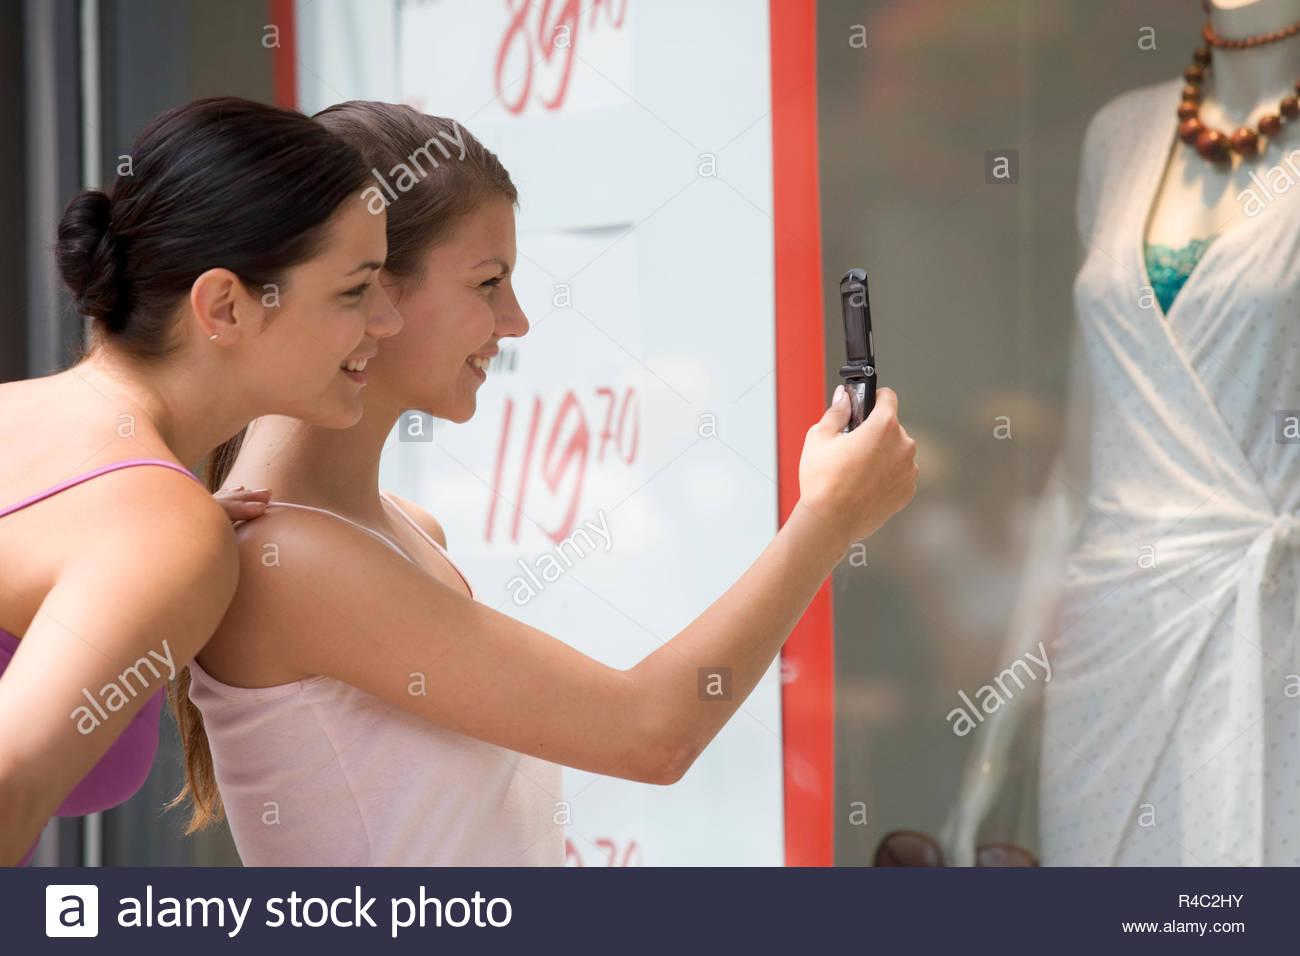 Two young women looking in a shop window - Stock Image